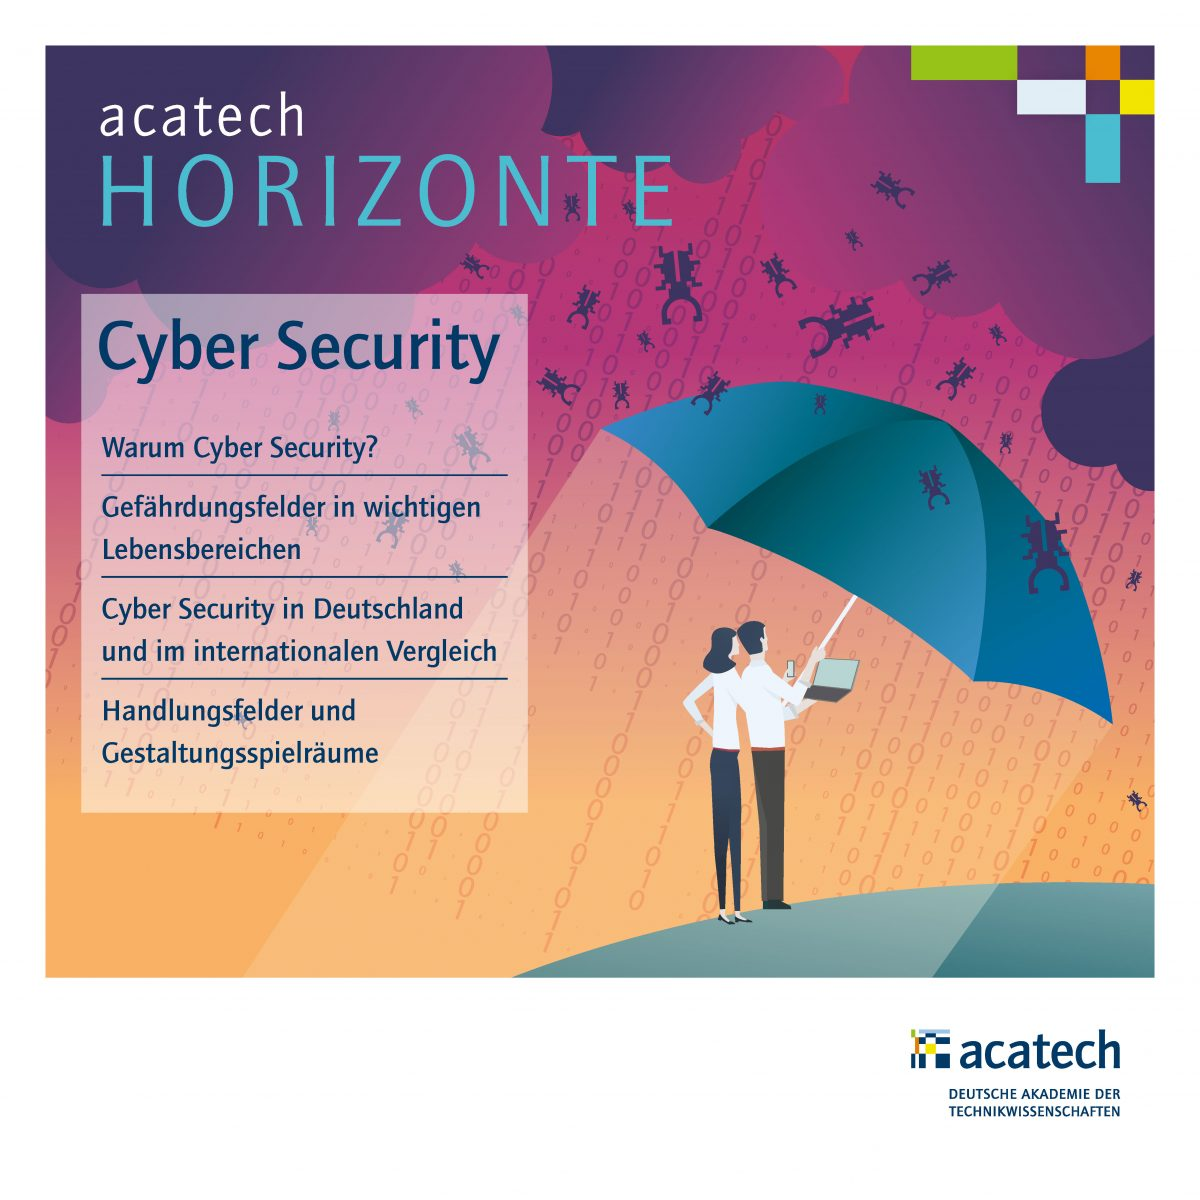 acatech HORIZONTE: Cyber Security